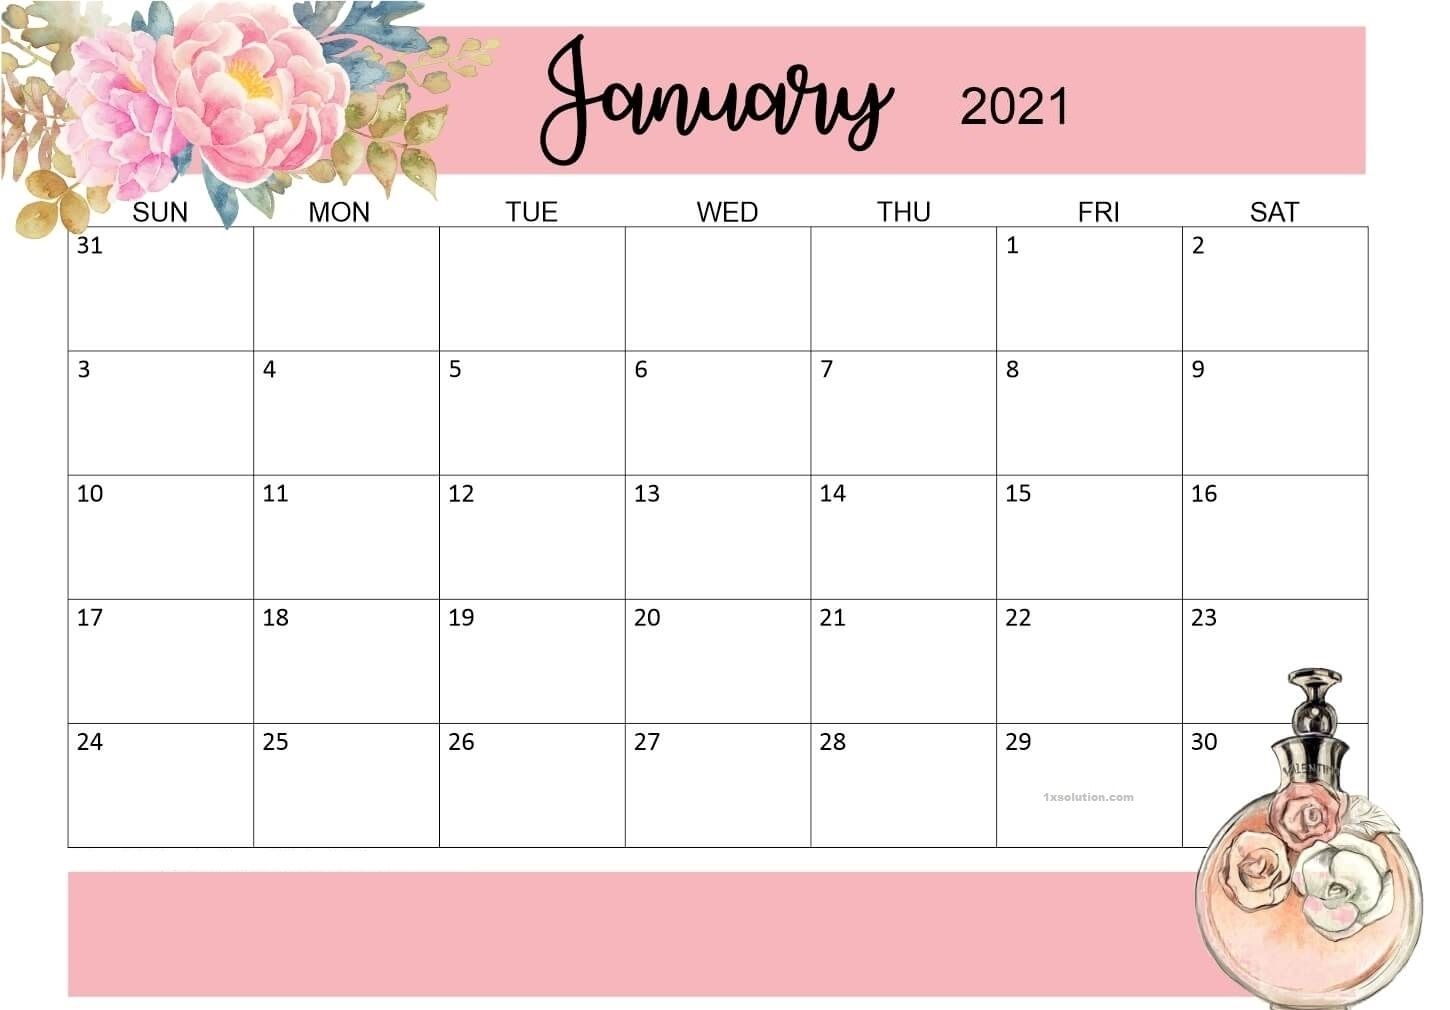 Free Printable January 2021 Calendar - For Events, Appointments | | Calendar